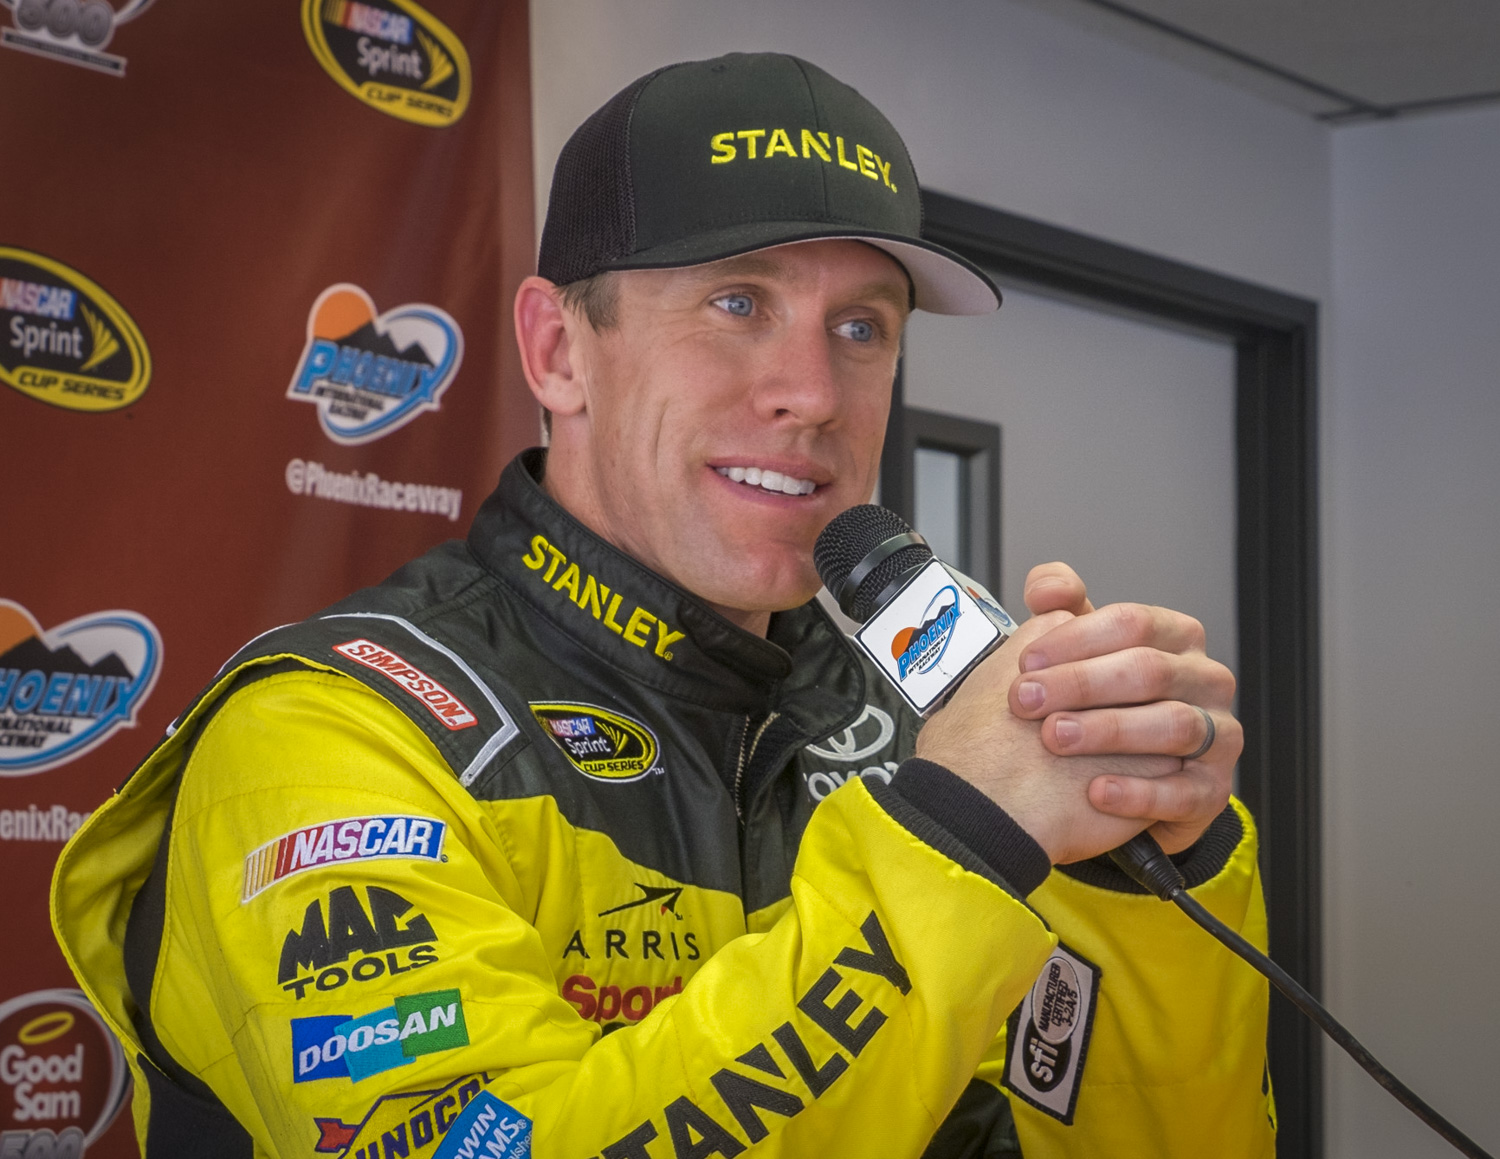 Carl Edwards, a top ranked NASCAR driver